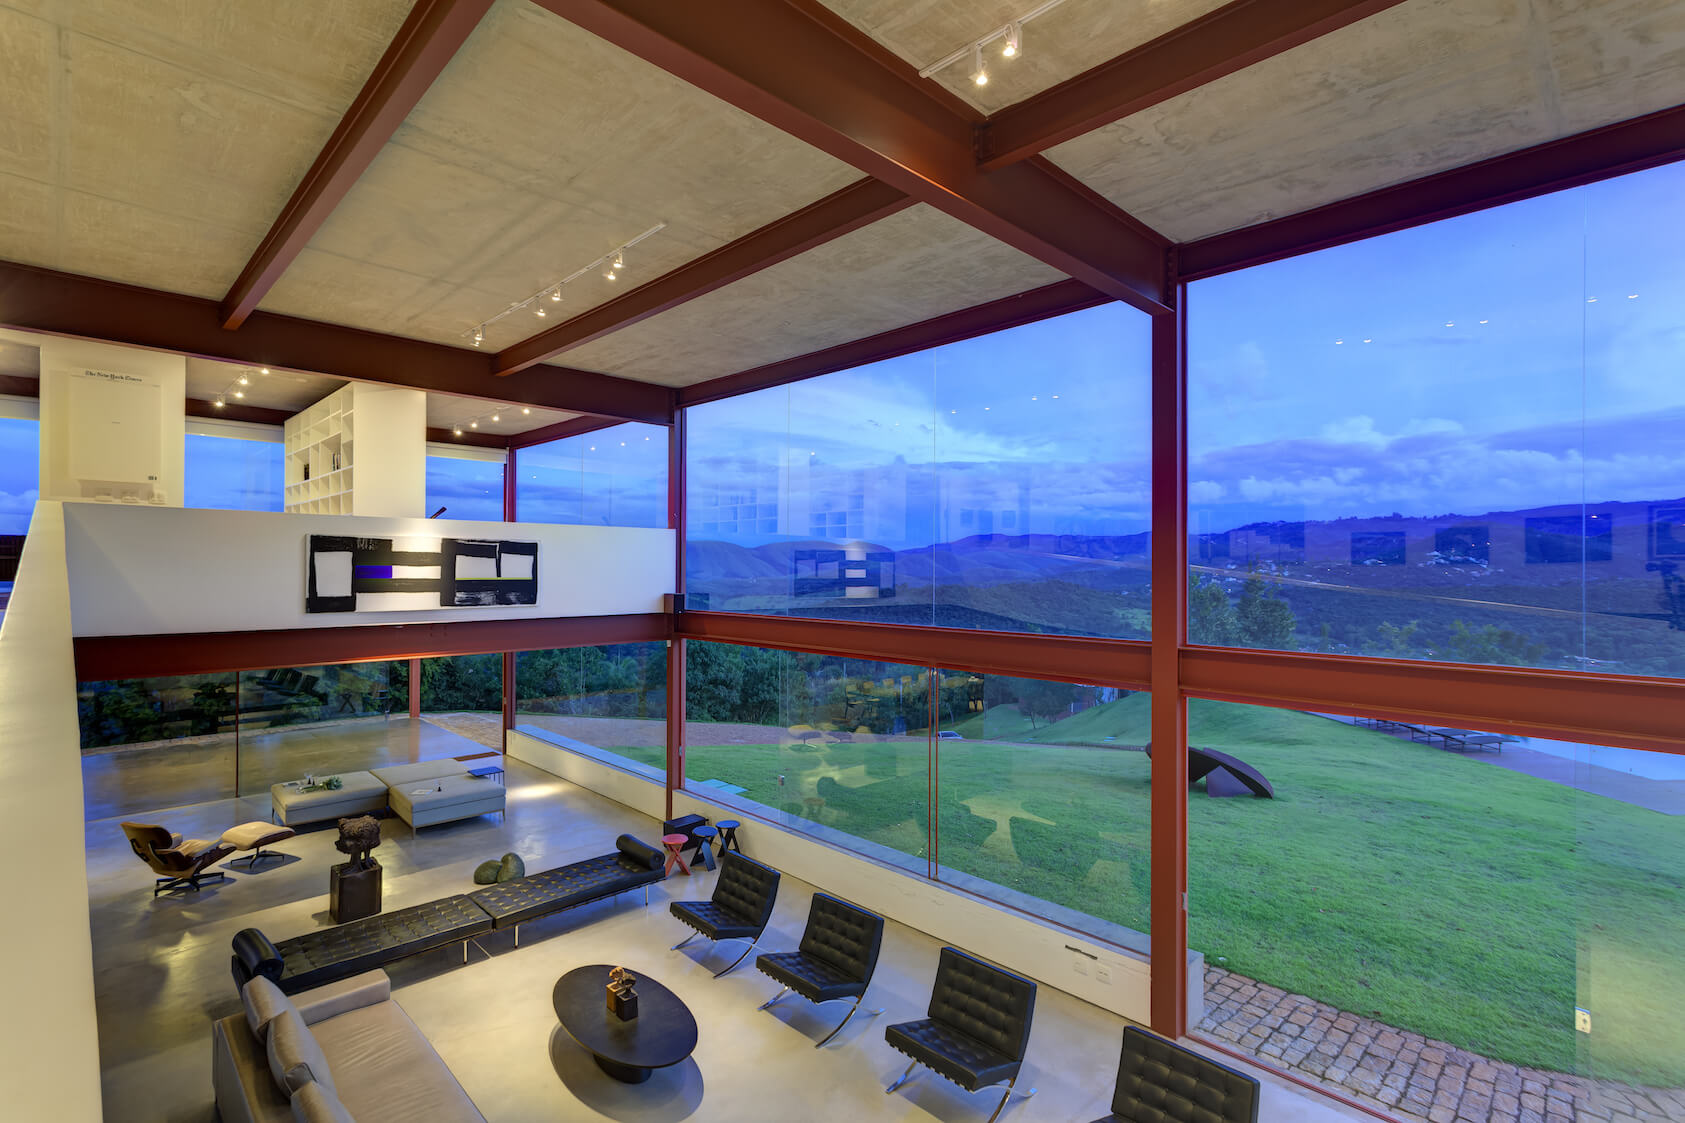 From the top of the ramp, we see down onto the array of modern leather seating options and the stone path surrounding the home.